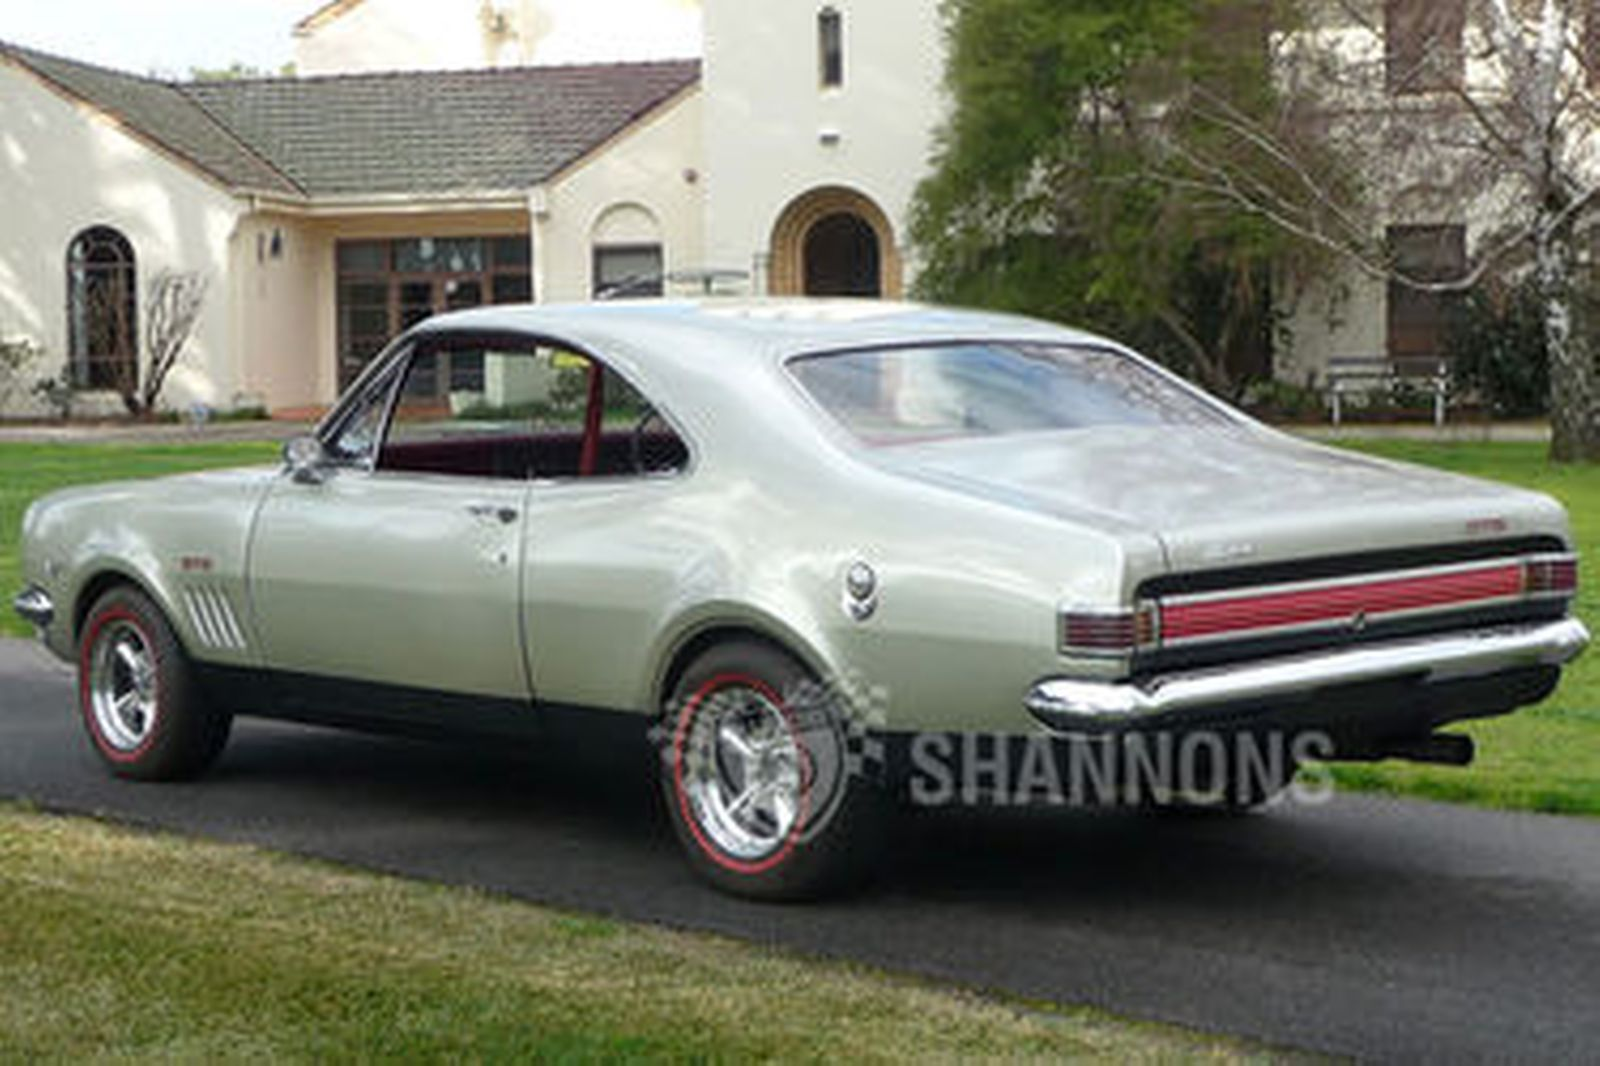 Holden Hk Monaro 307 Gts Coupe Auctions Lot 25 Shannons